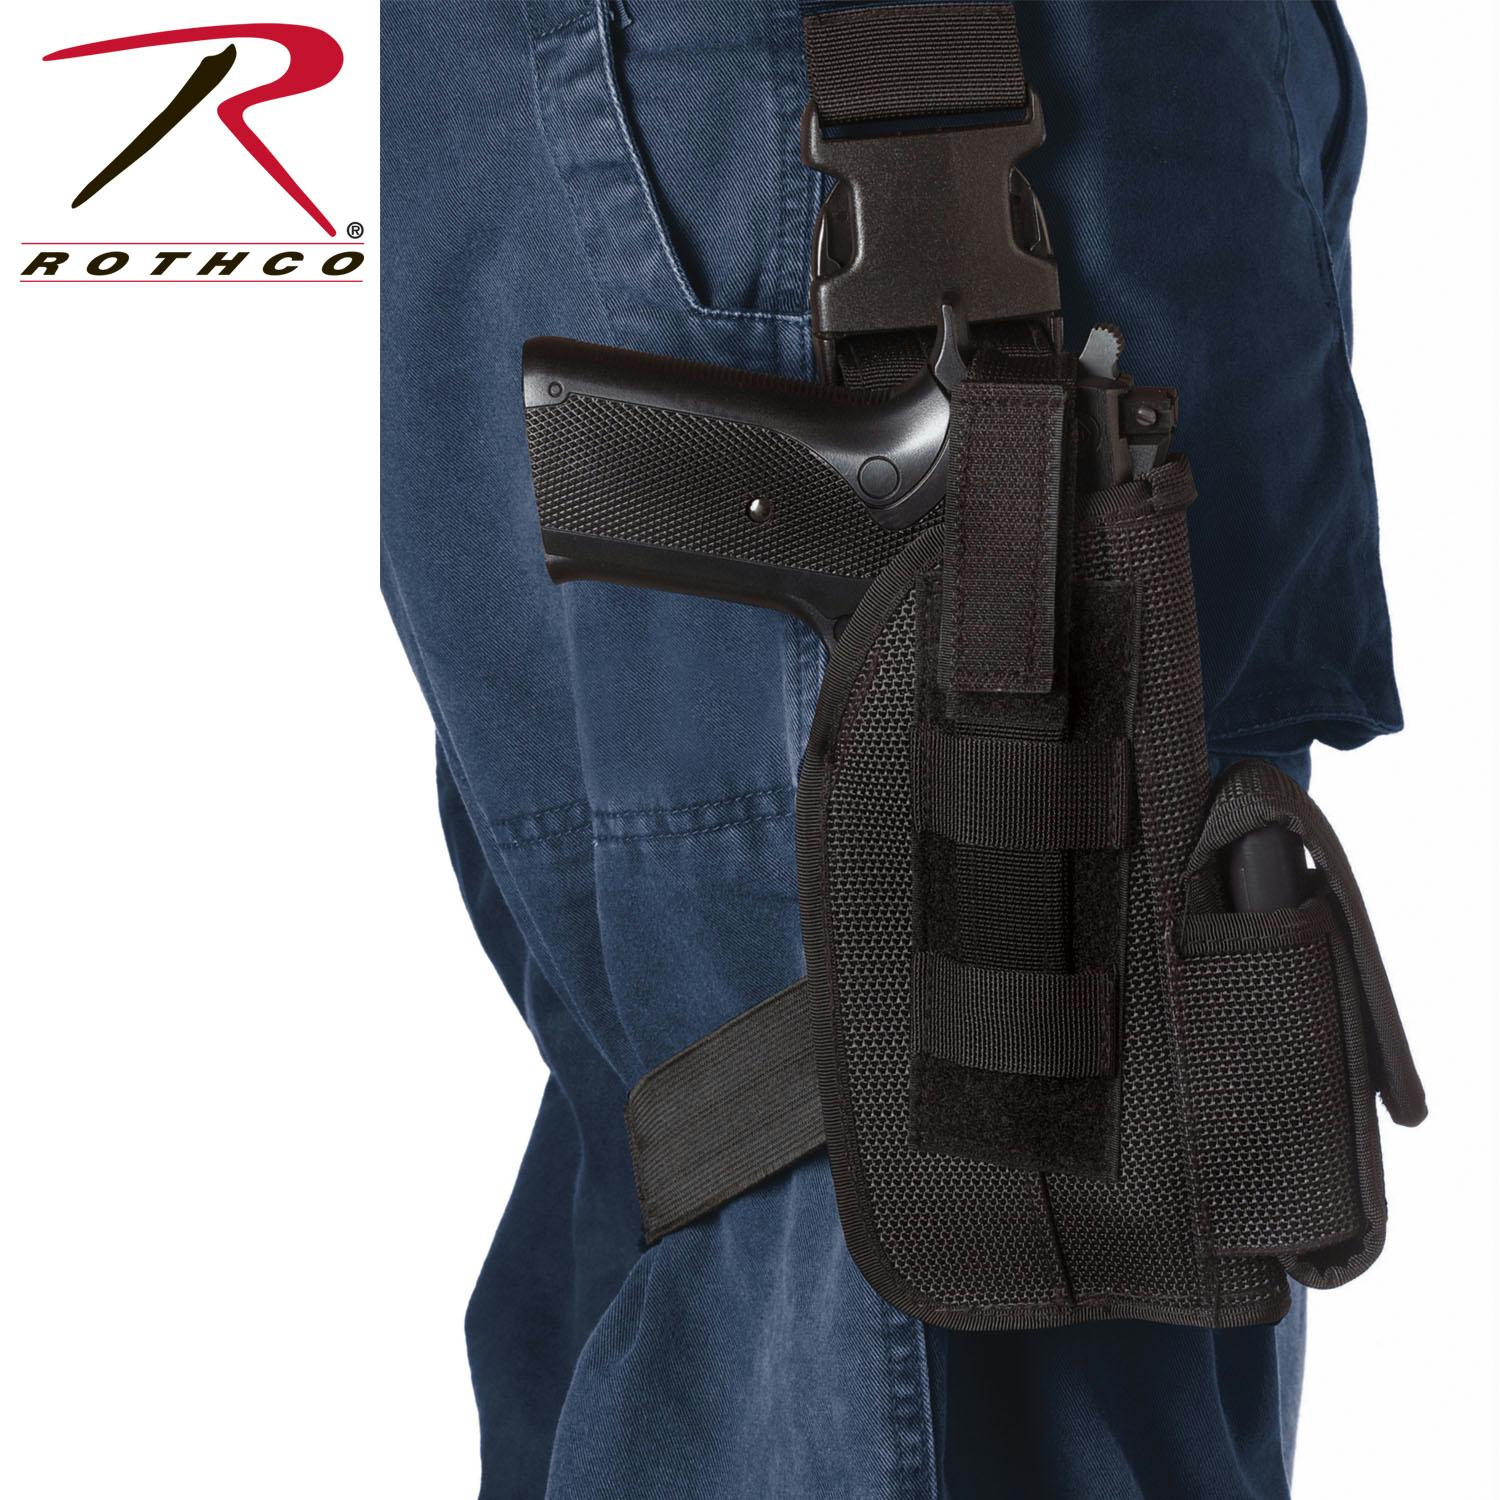 Rothco Tactical Leg Holster - Black / 5 Inches